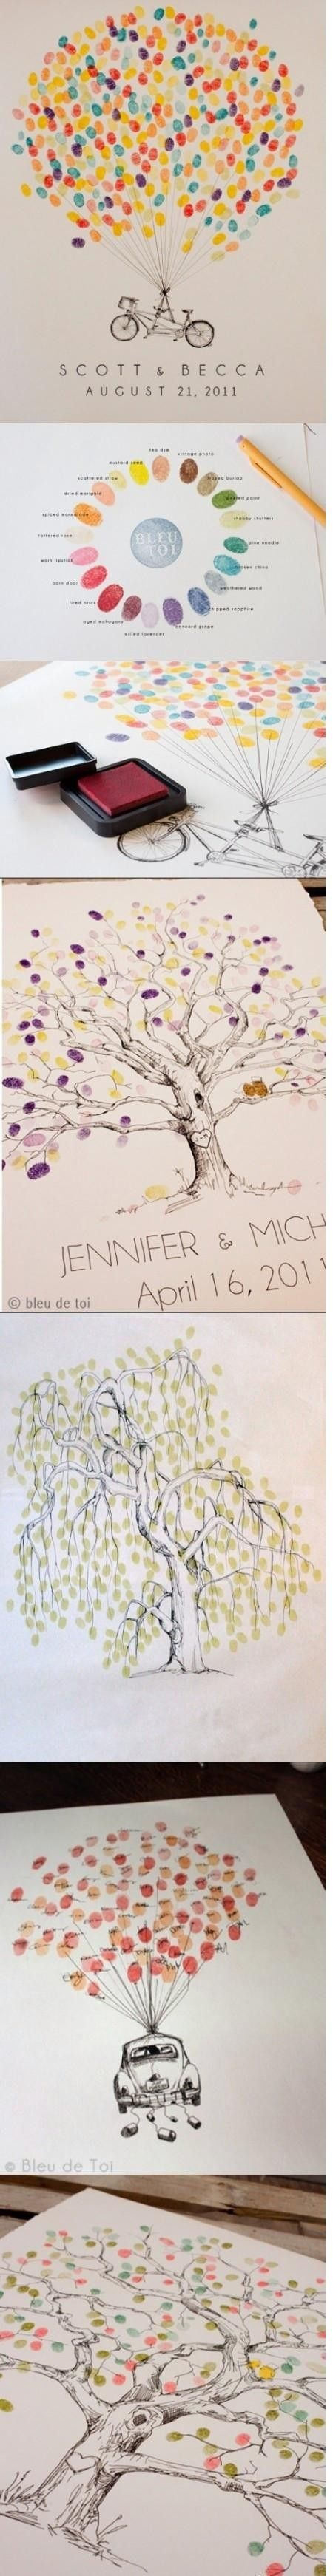 Fingerprint ideas. wedding guest books / family reunions